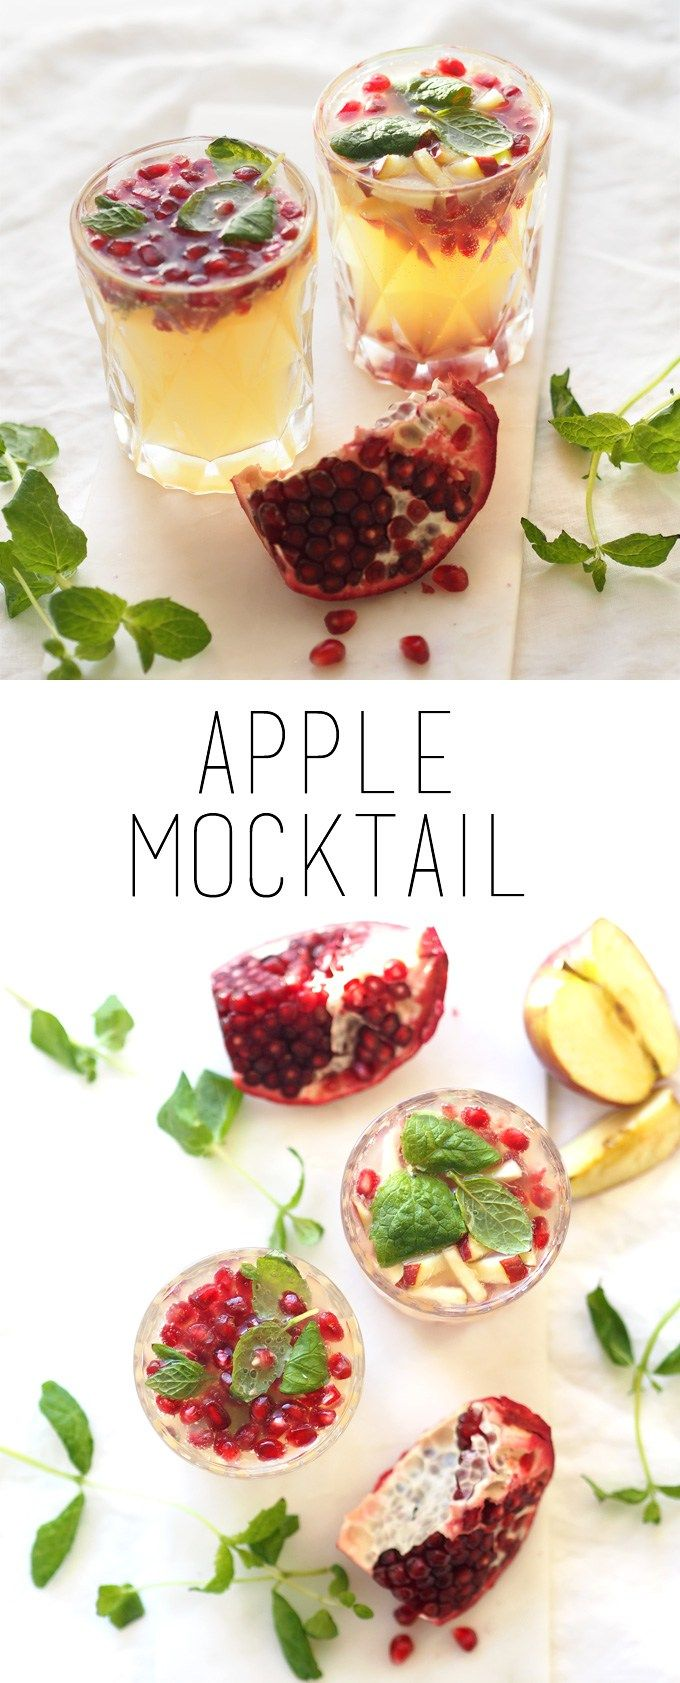 Kid-friendly mocktail with apple, pomegranate and mint - perfect for New Year's Eve